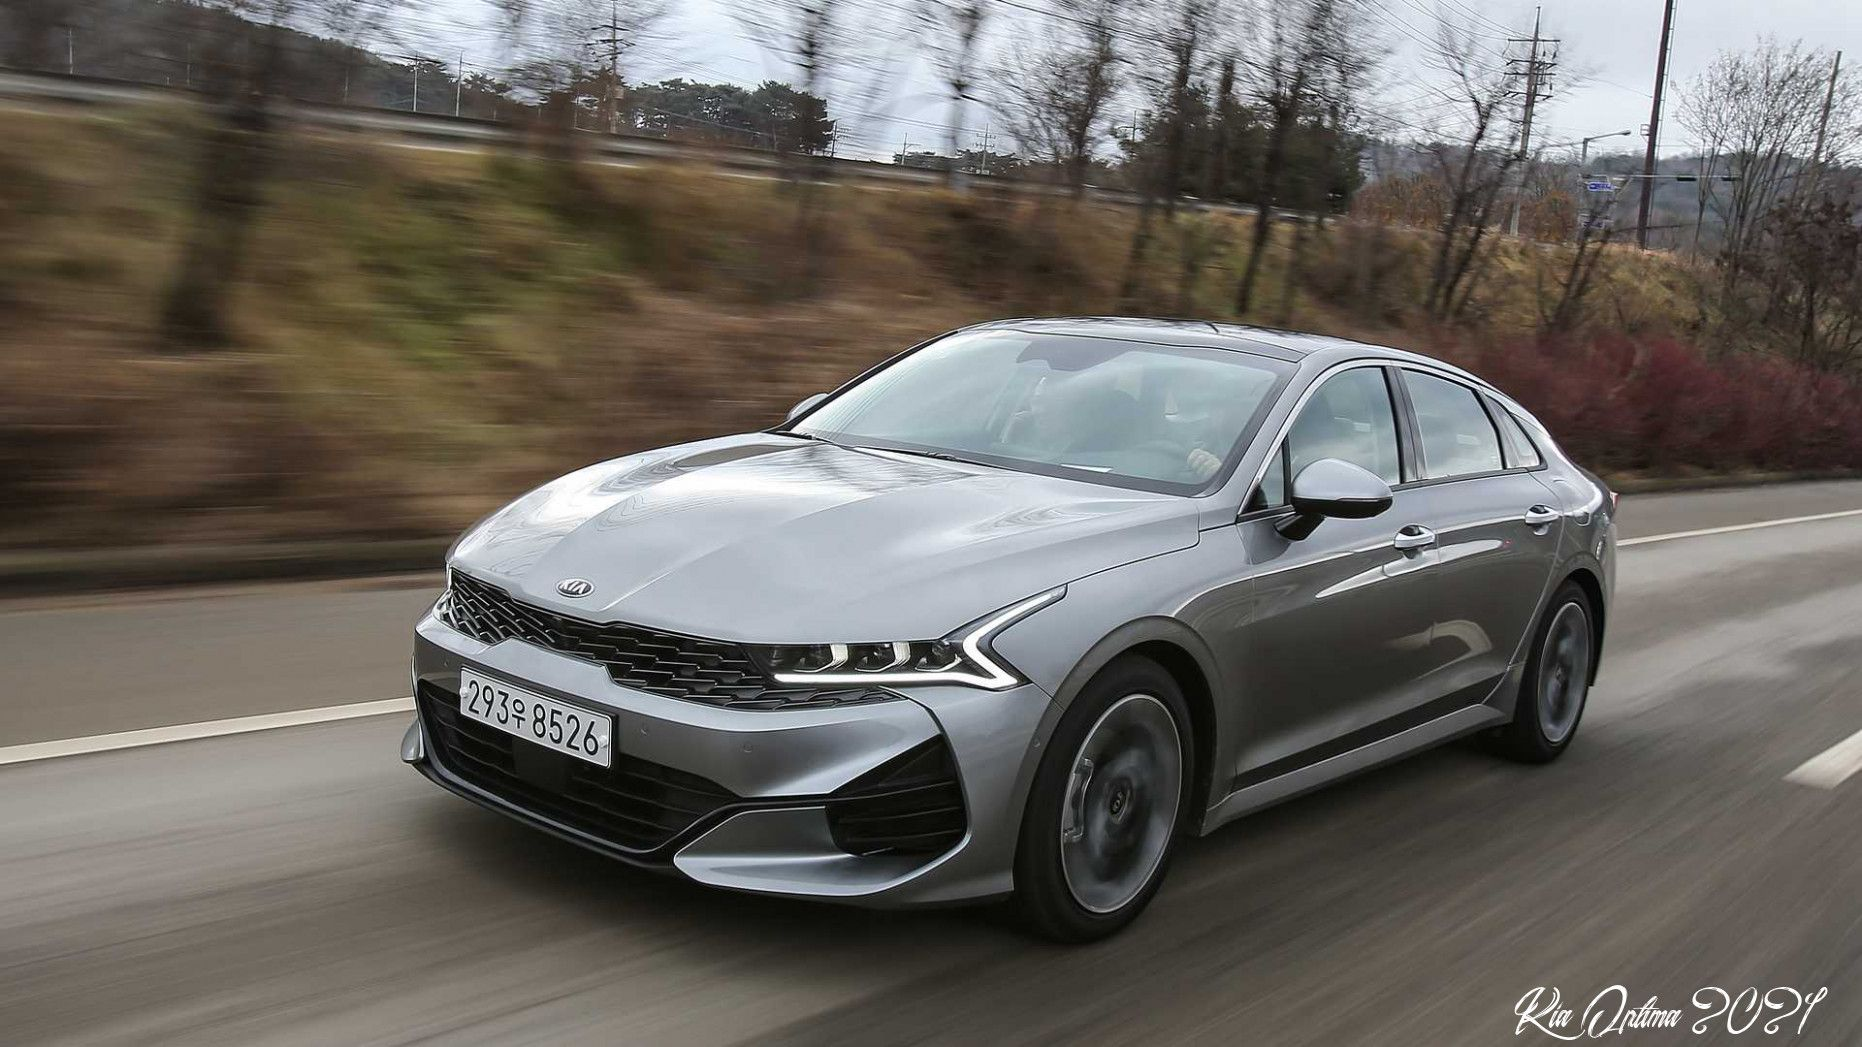 Kia Optima 2021 Redesign And Concept In 2020 Kia Optima Kia Mid Size Car